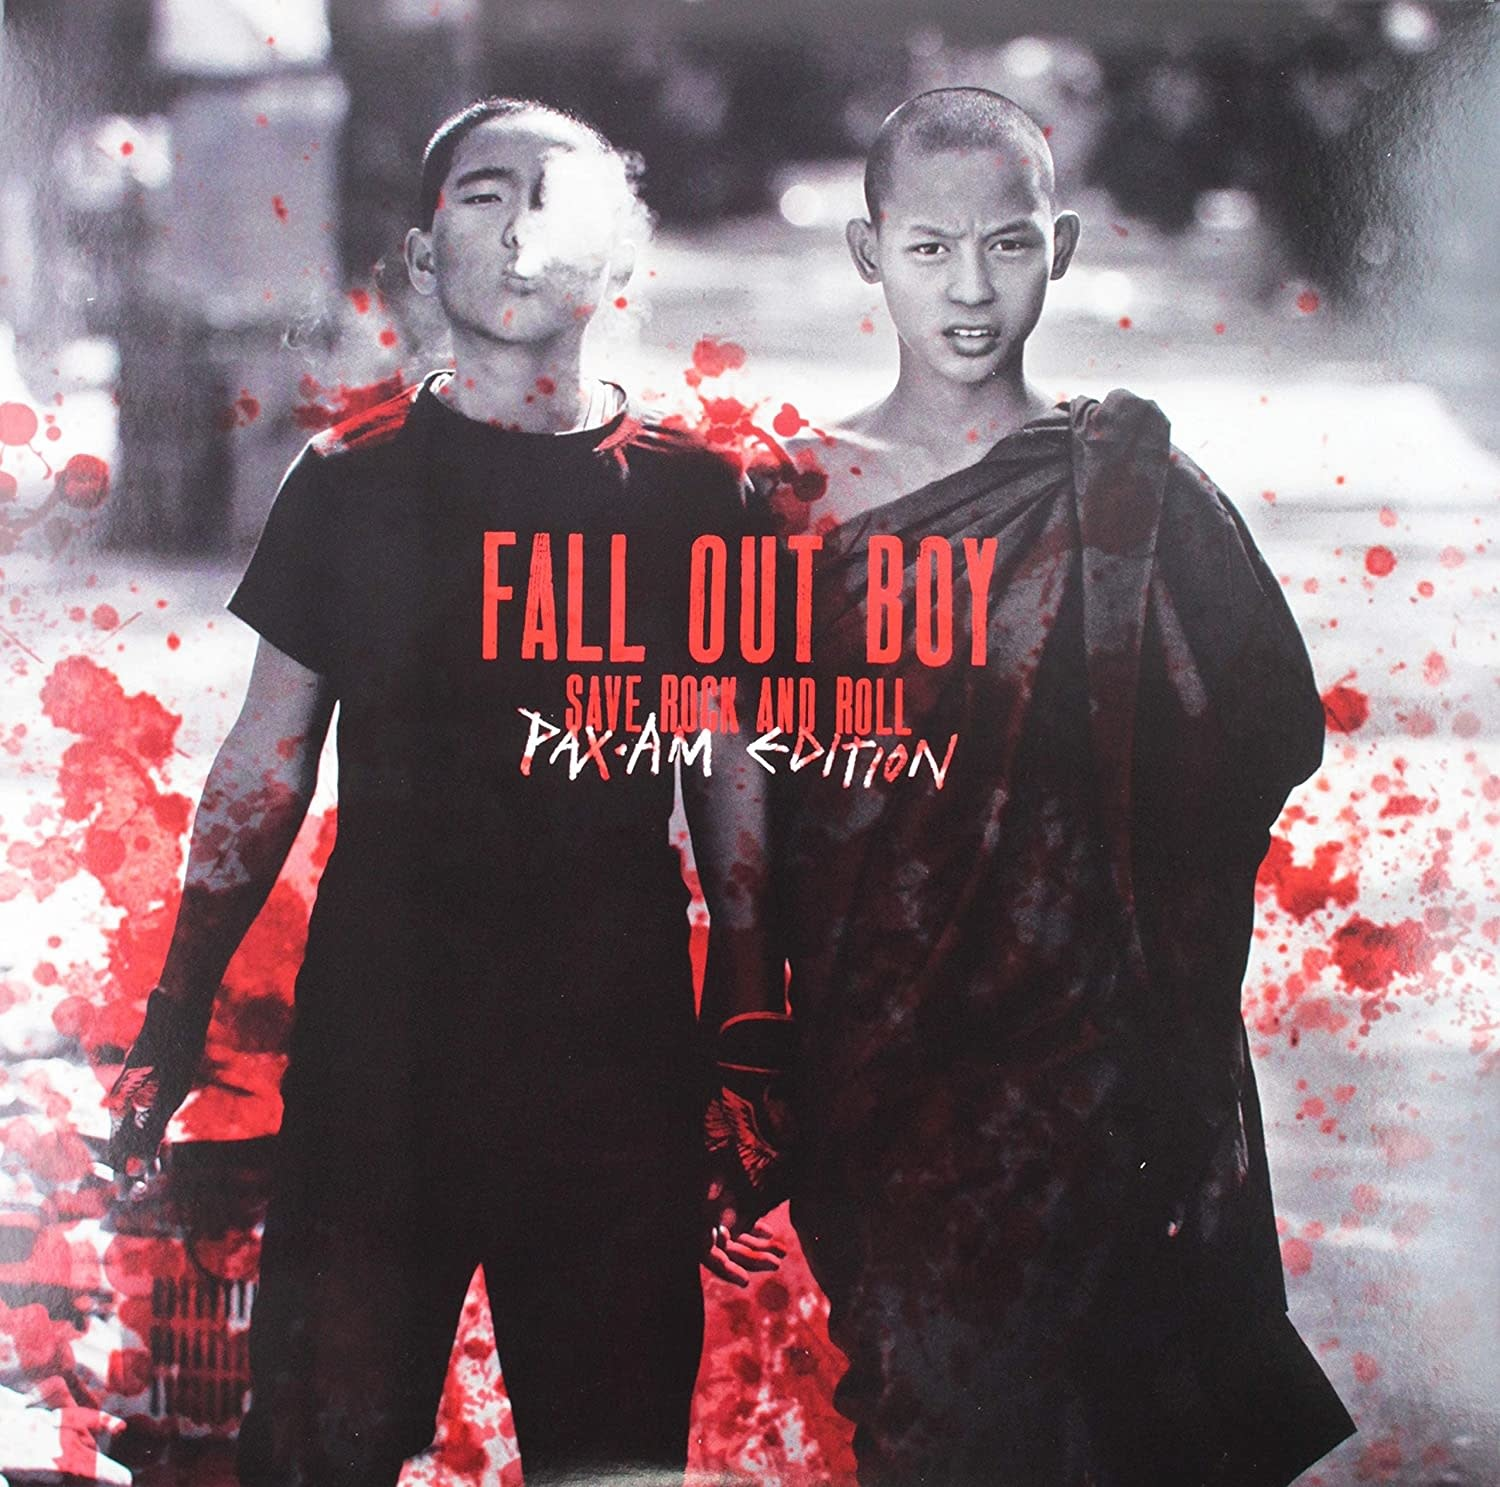 Fall Out Boy ‎– Save Rock and Roll (PAX•AM Edition)